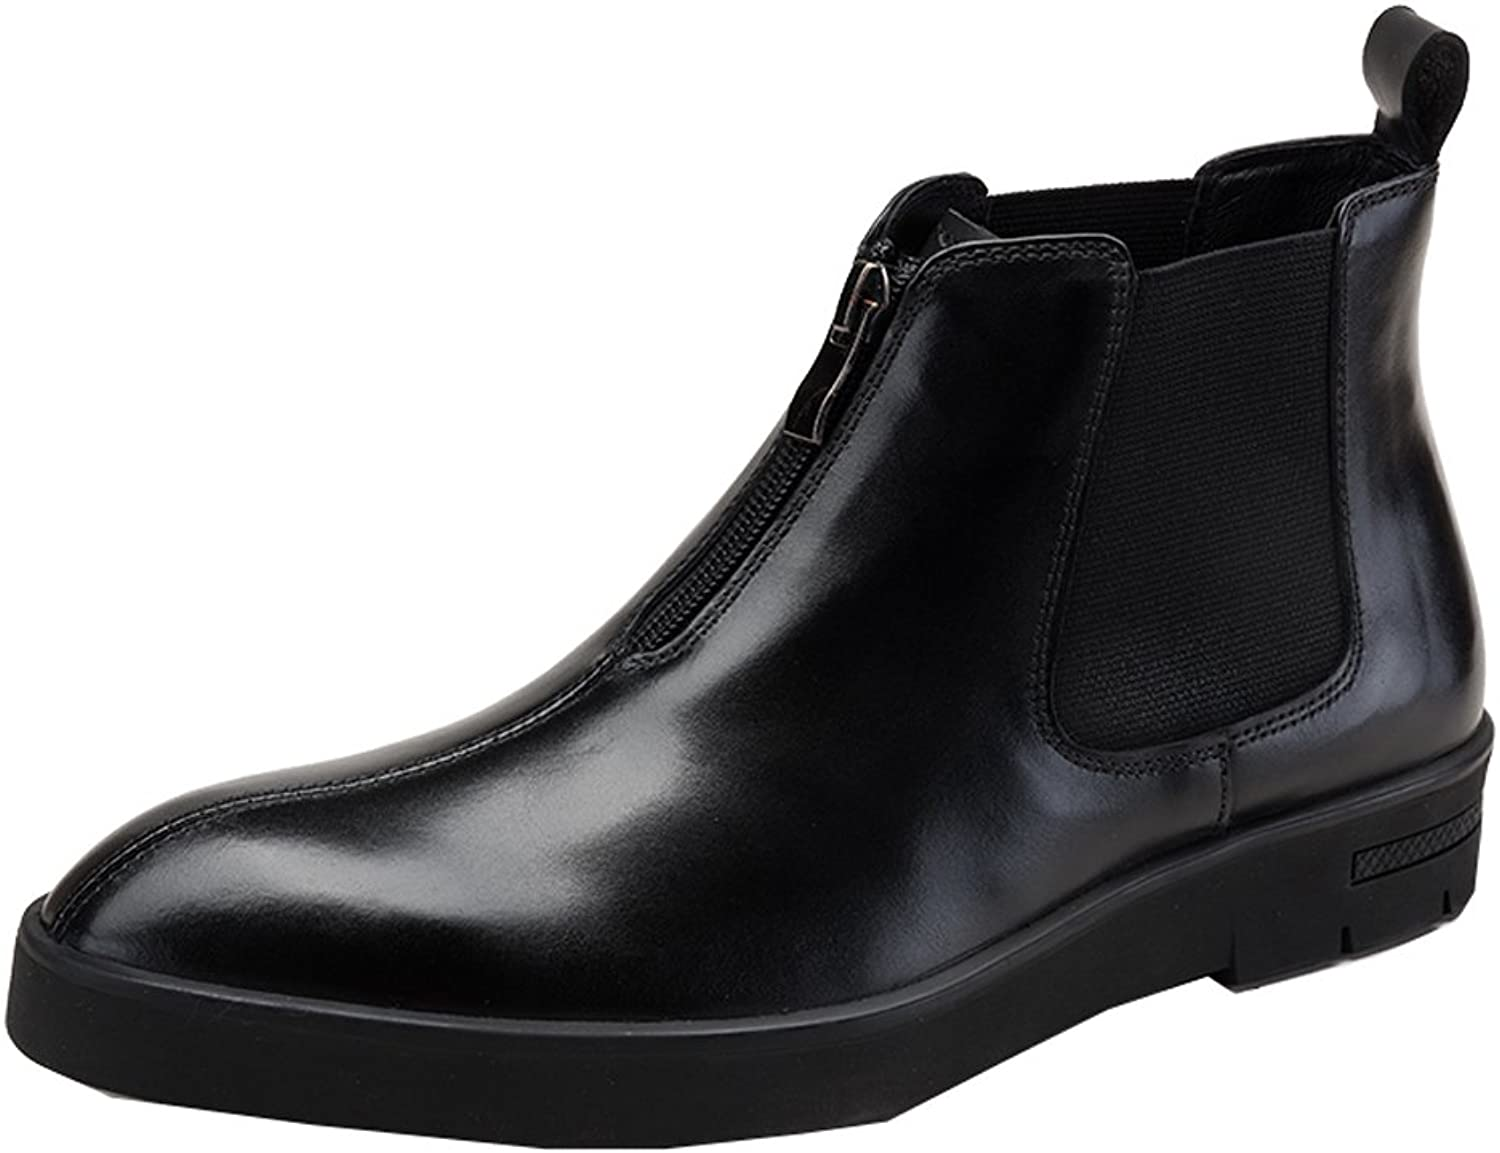 MedzRE Men's Cow Leather Winter Chelsea Boots with Zip Detail